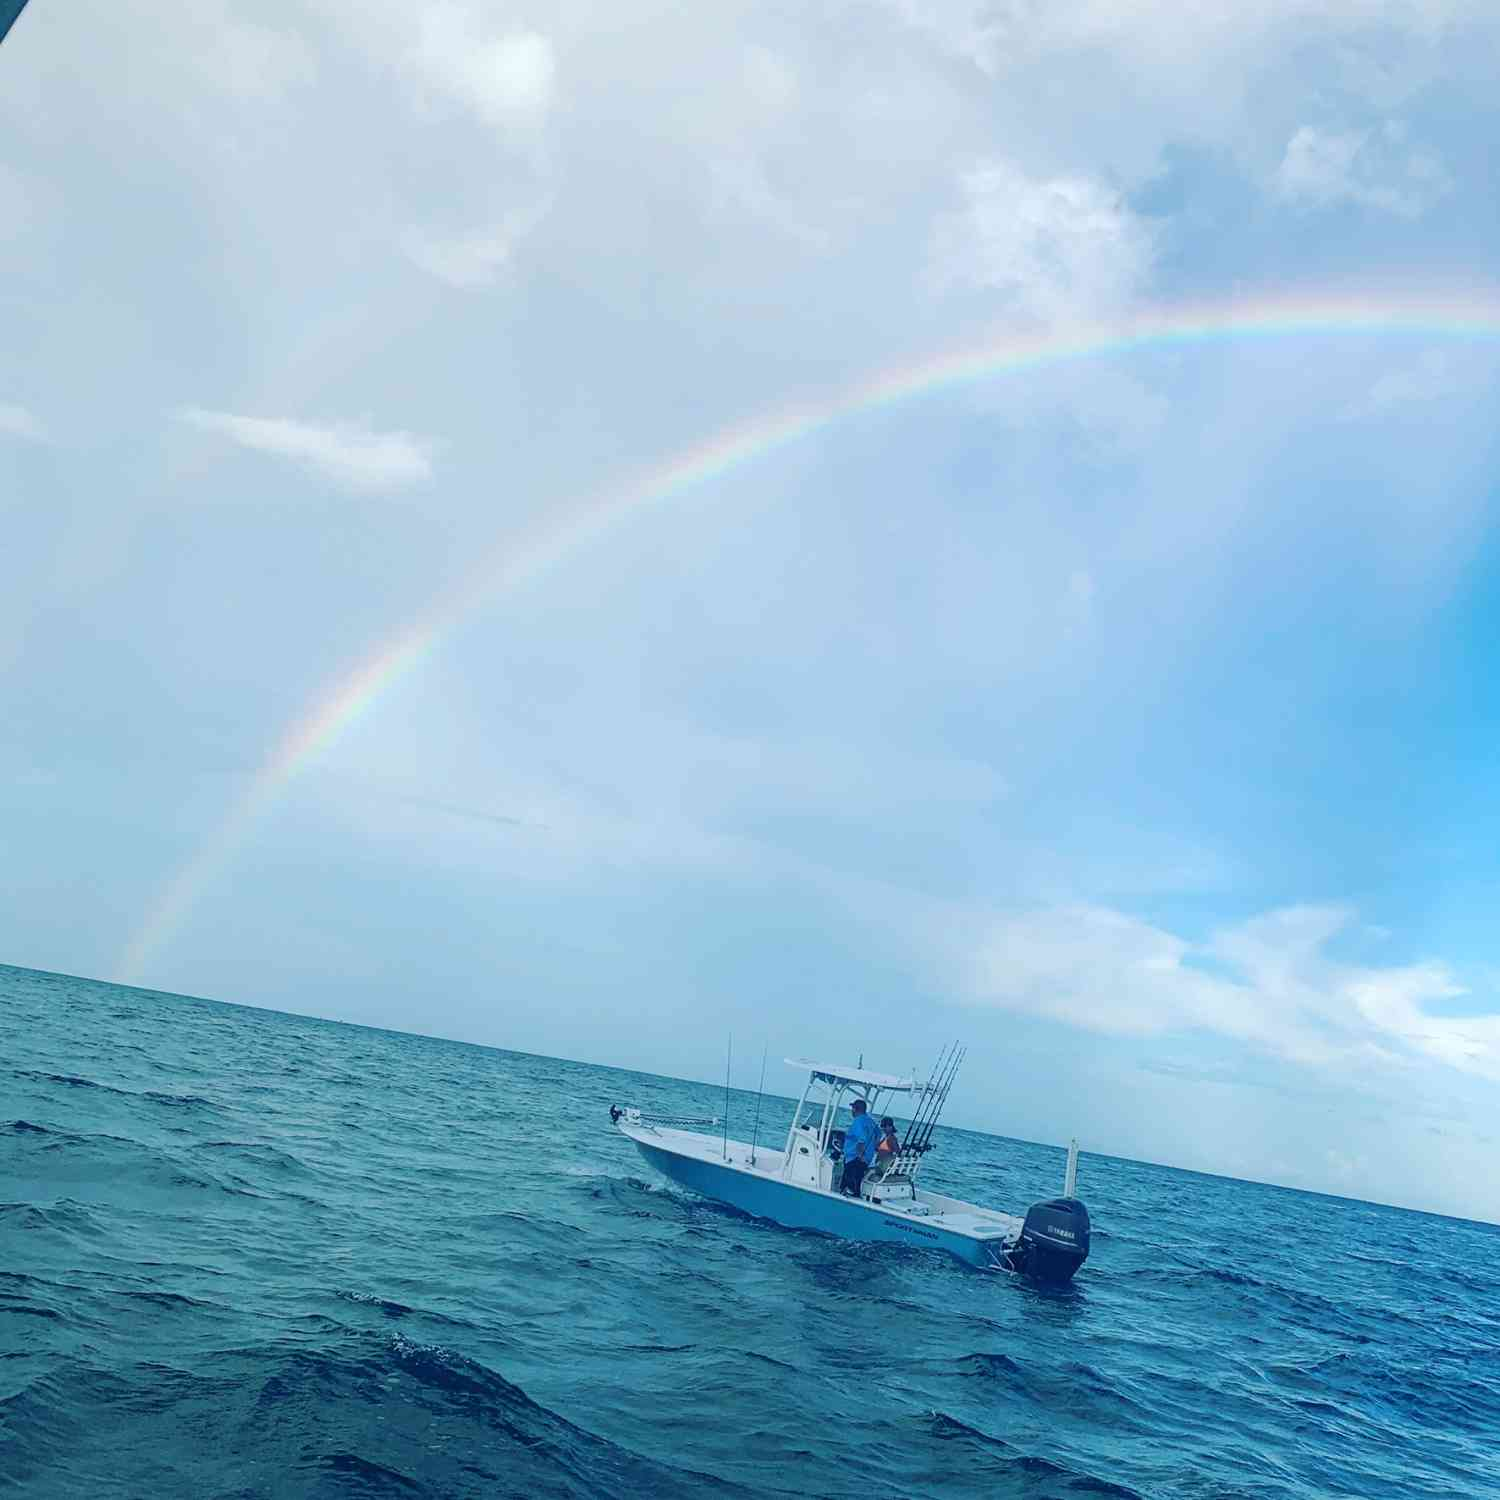 Title: Team Salty Swallow - On board their Sportsman Masters 247 Bay Boat - Location: Marathon, Florida Keys. Participating in the Photo Contest #SportsmanJanuary2020